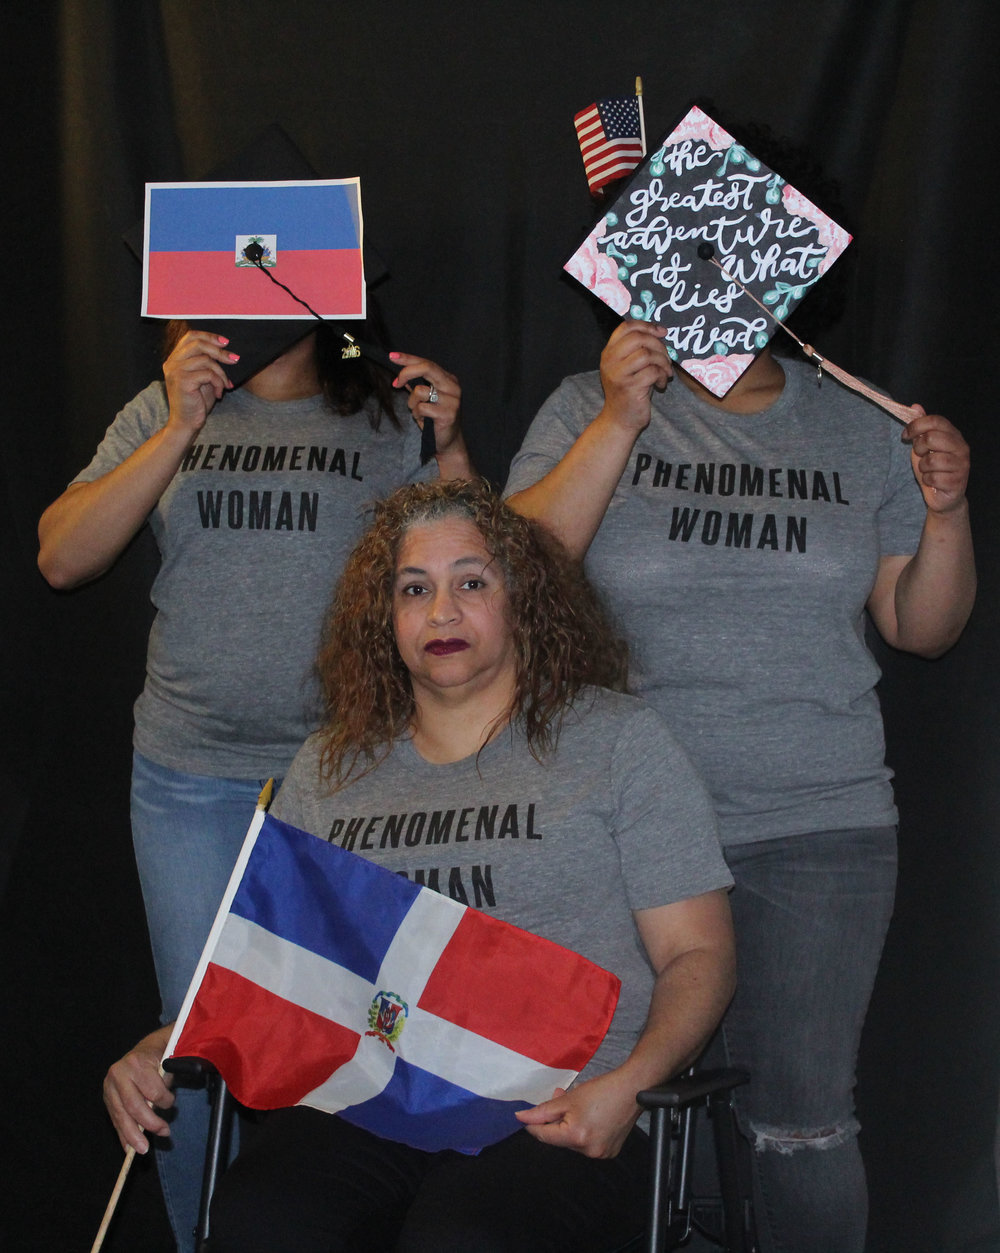 Dominican and Haitian Women - We celebrate our cultures, our strengths, our triumphs, our accomplishments, most of all our unity. We are family.